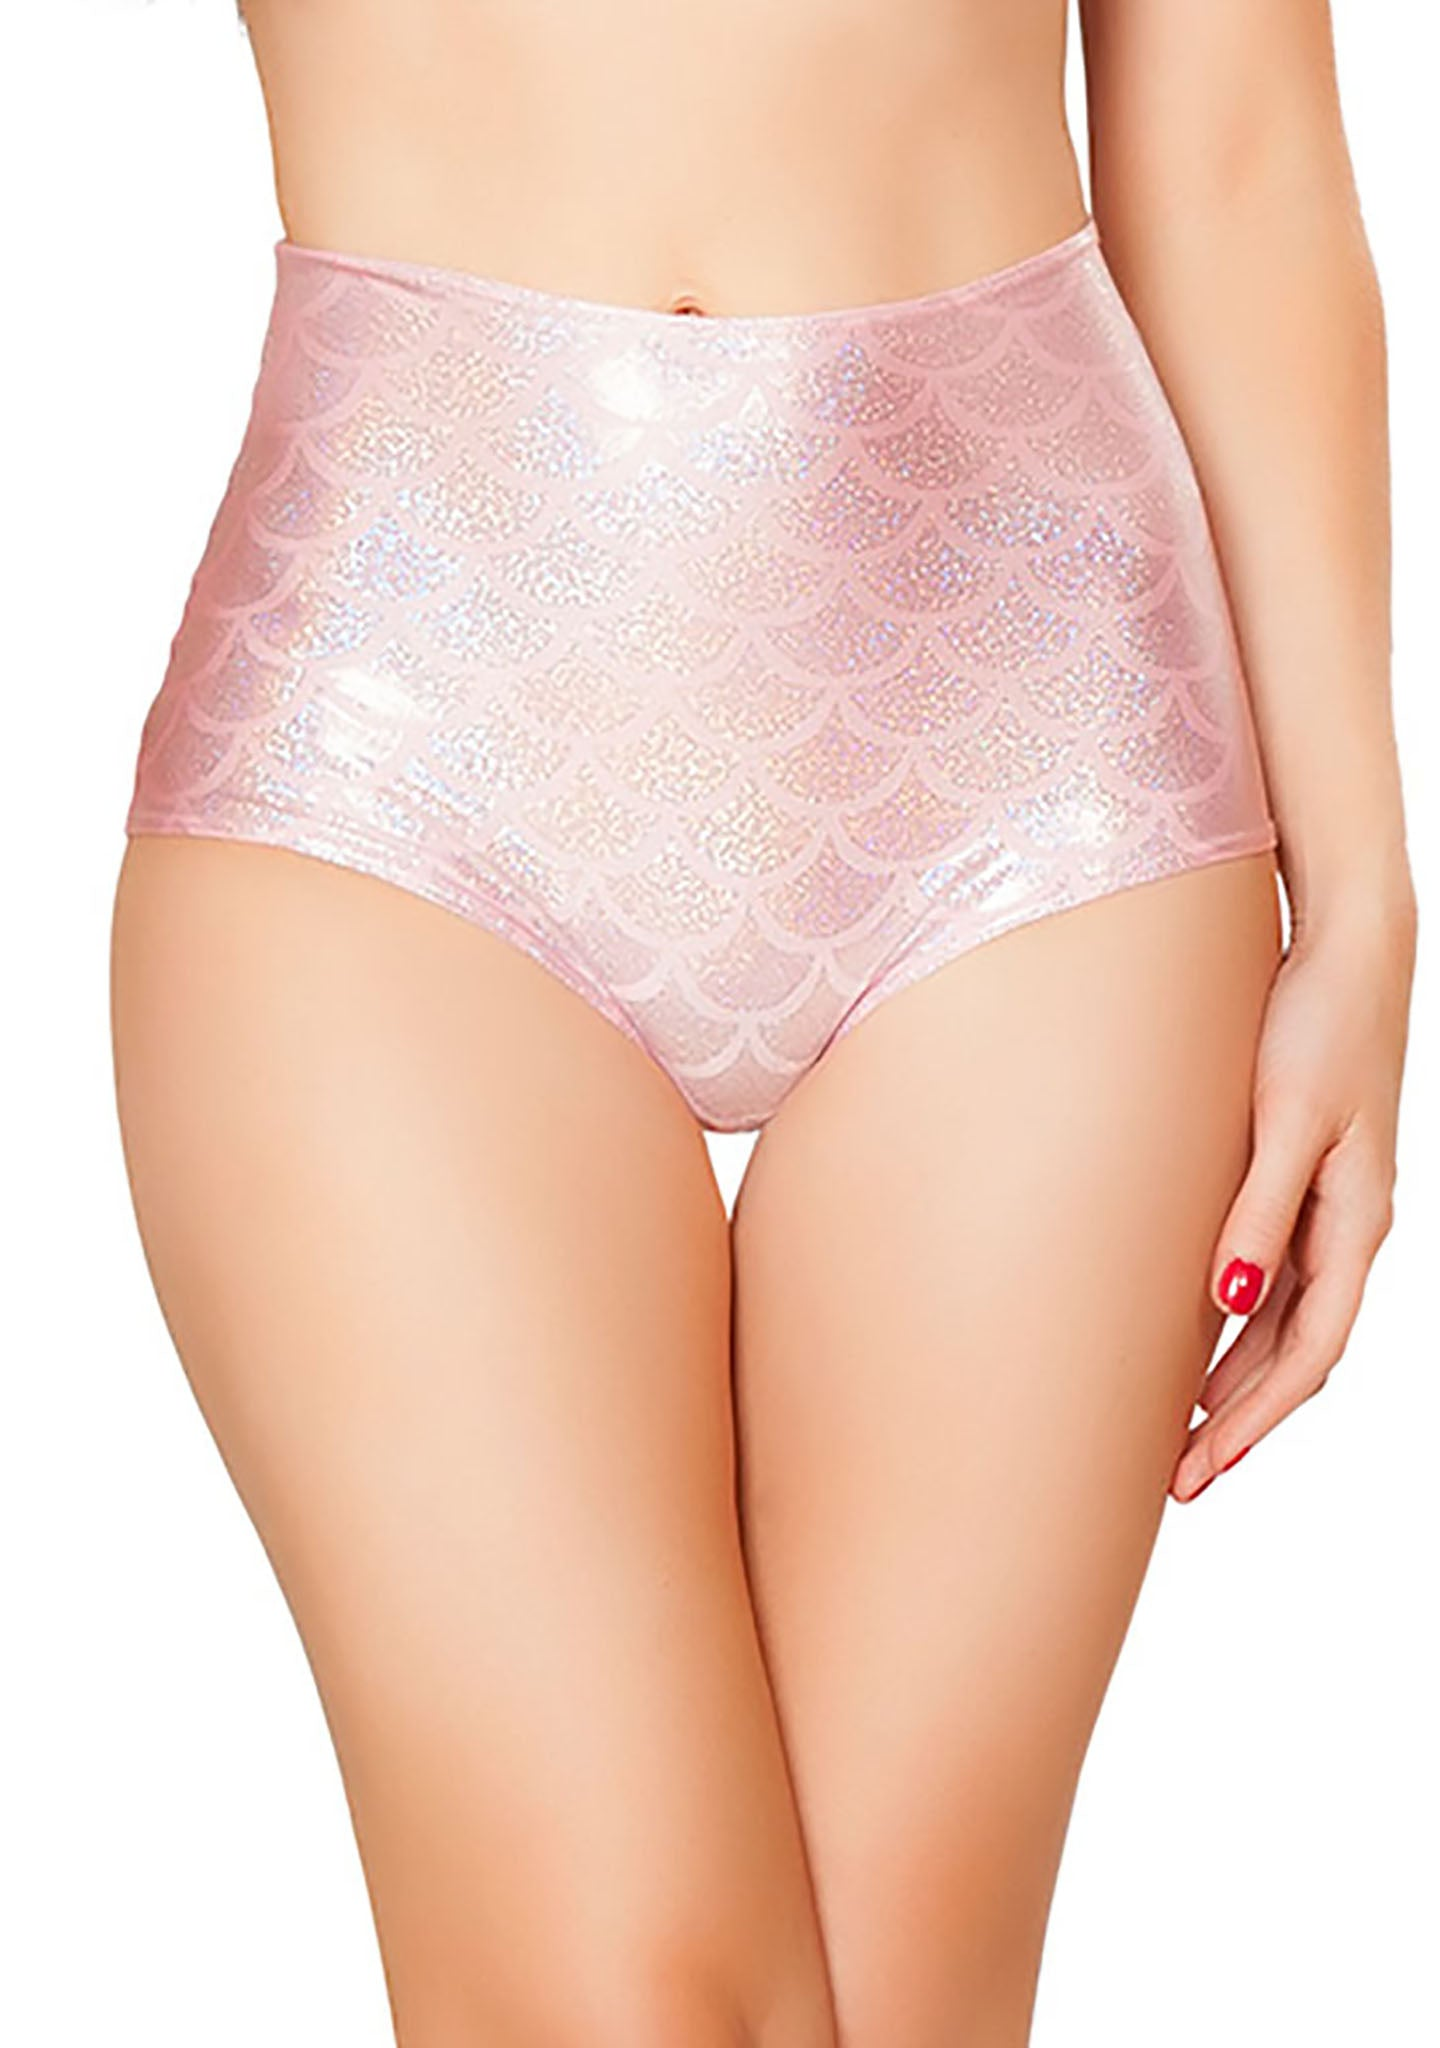 J Valentine Mermaid High Waisted Shorts in Baby Pink